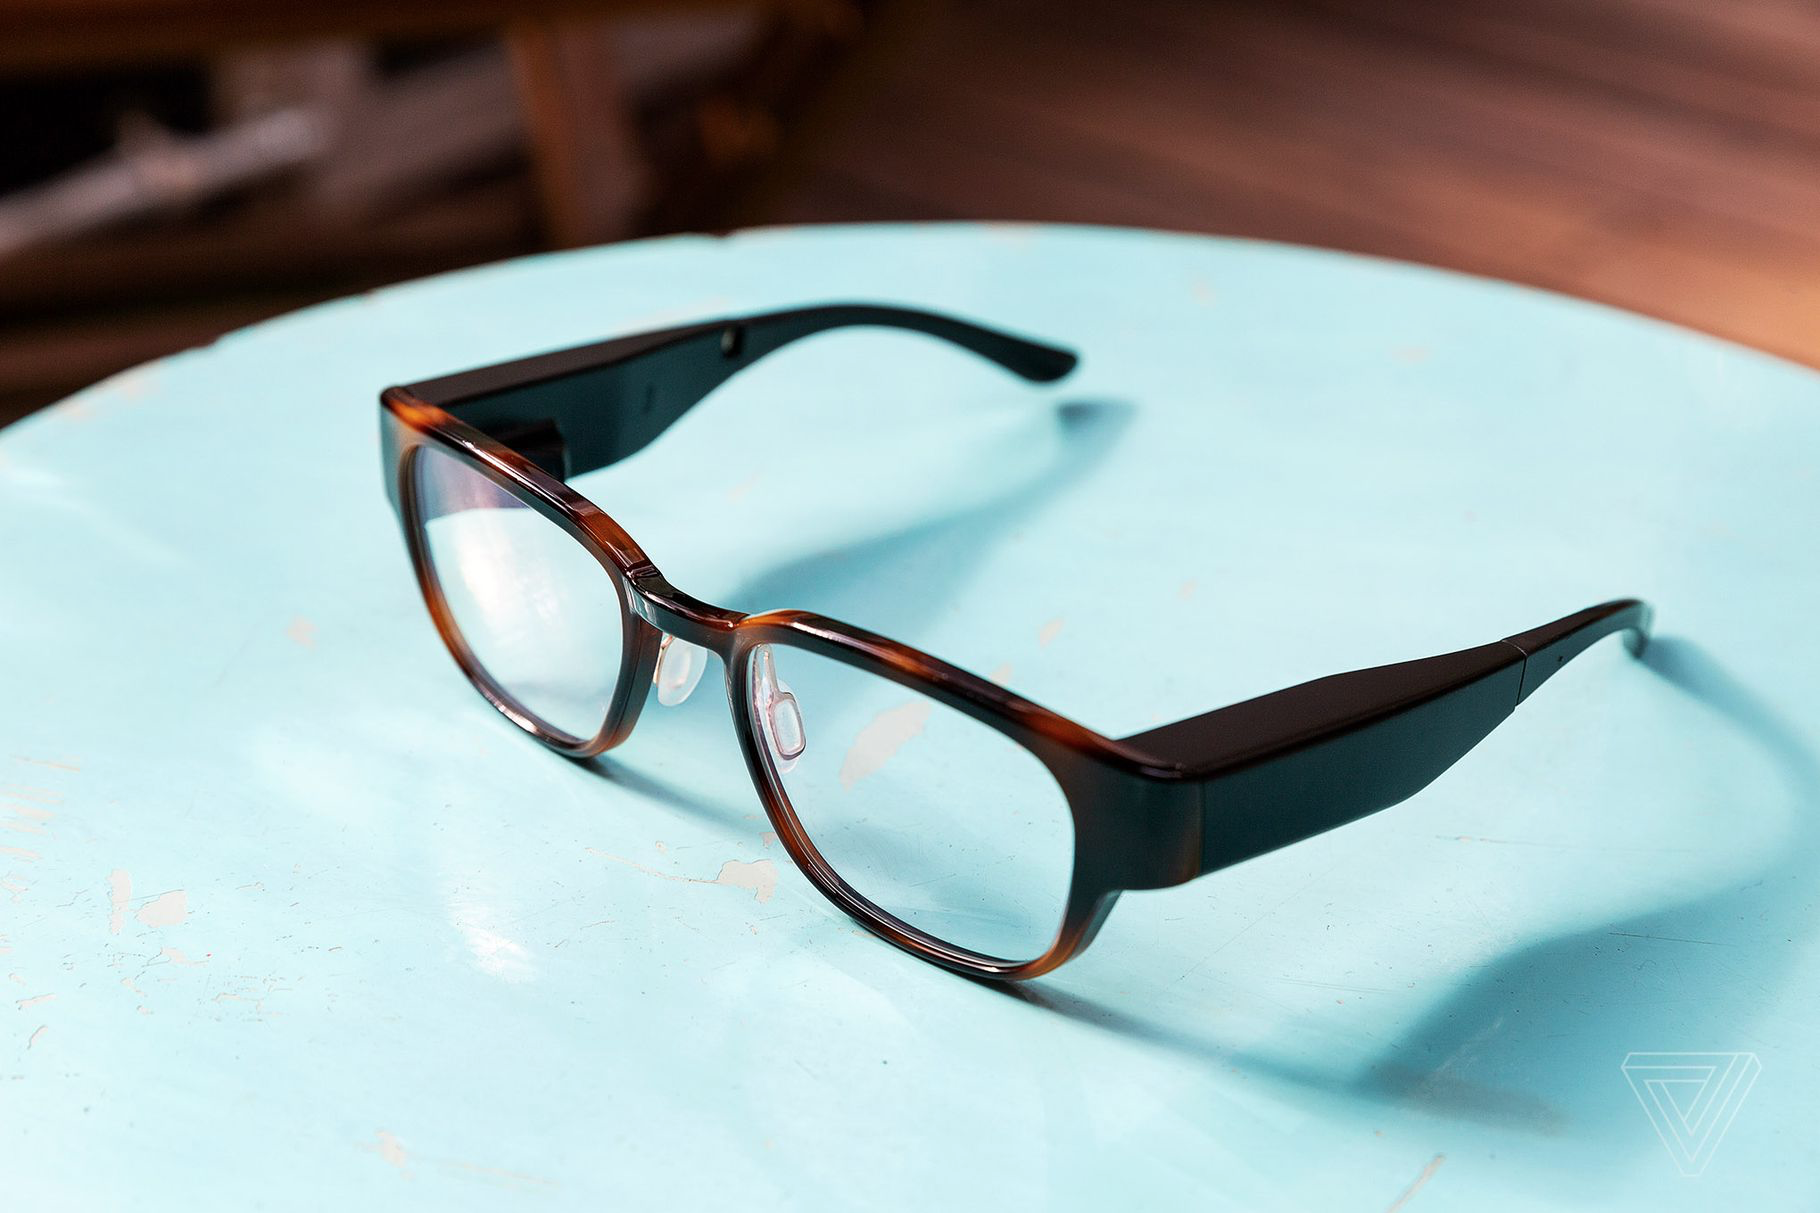 North has acquired the patents and tech behind Intel's Vaunt AR glasses